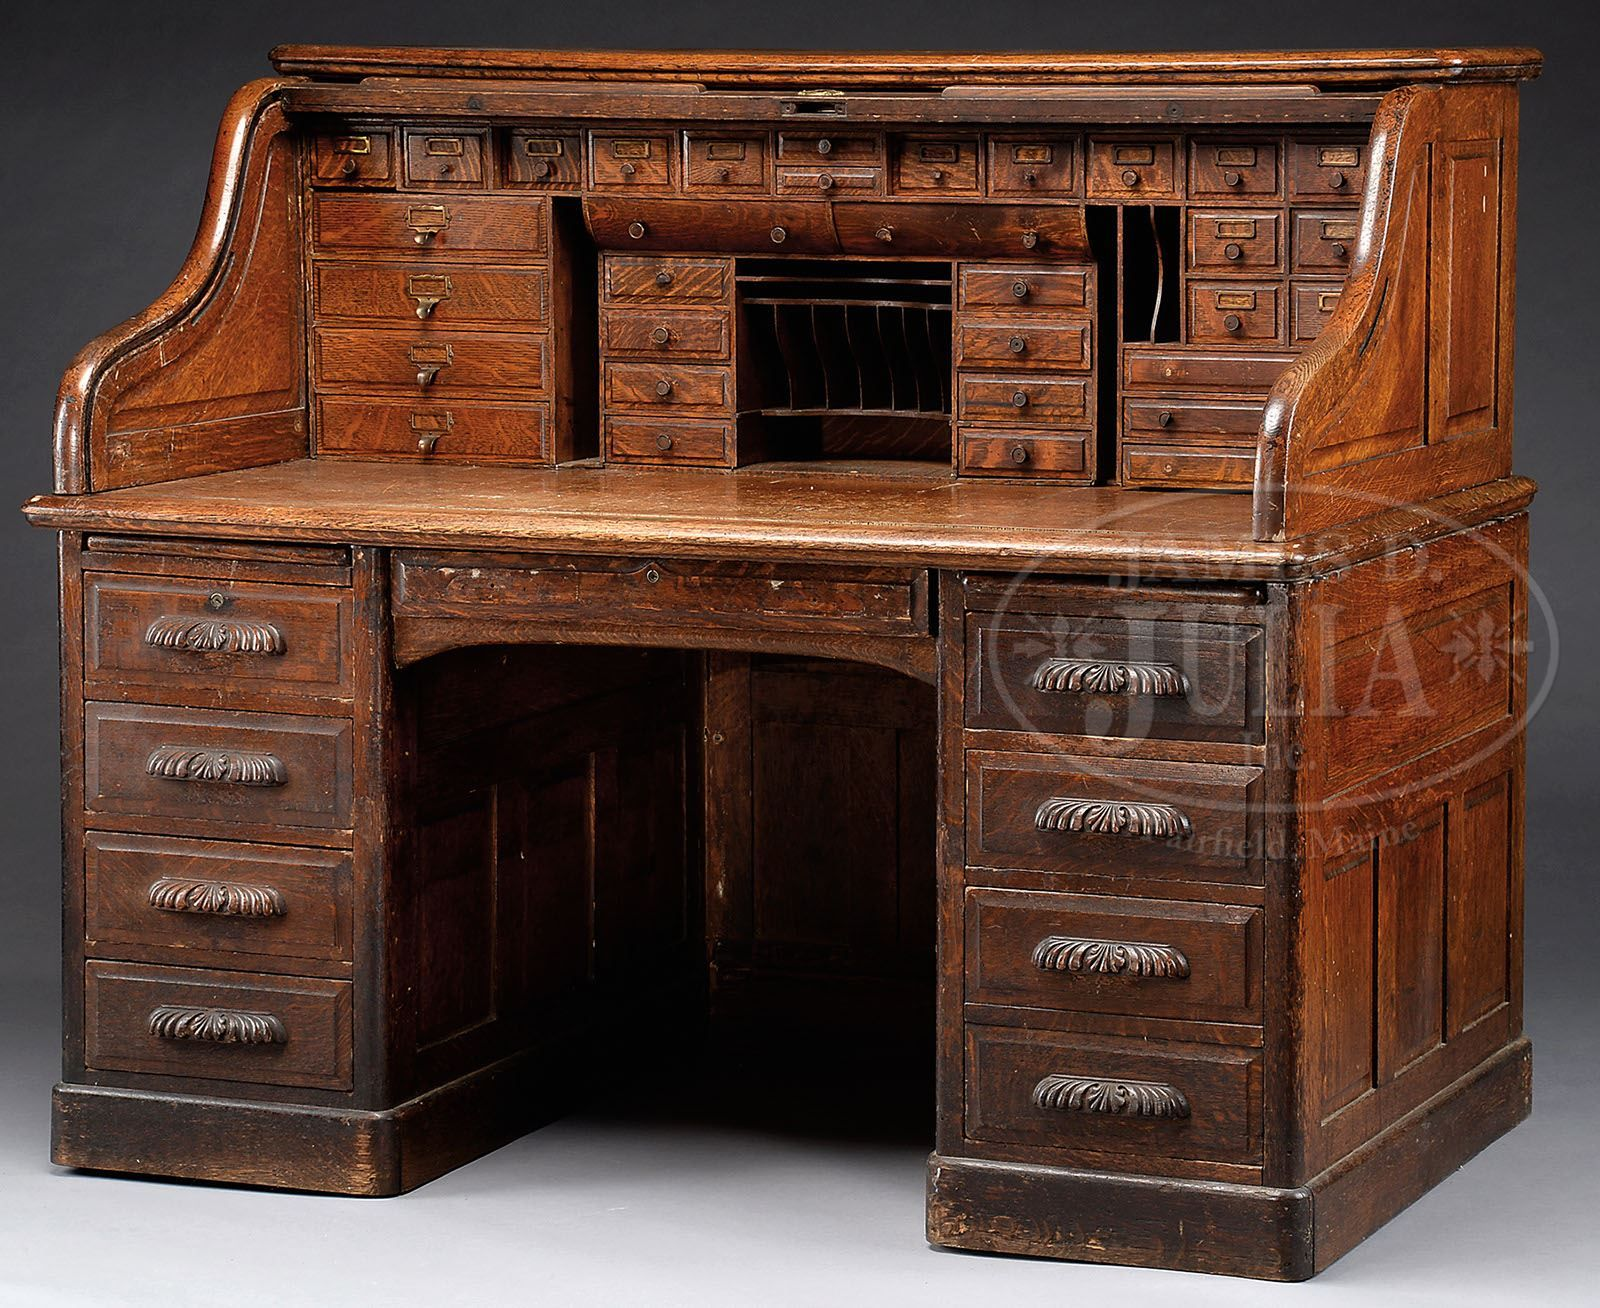 Fine Oak S Roll Top Desk With Full Interior Roll Top Desk Desk Desk With Drawers